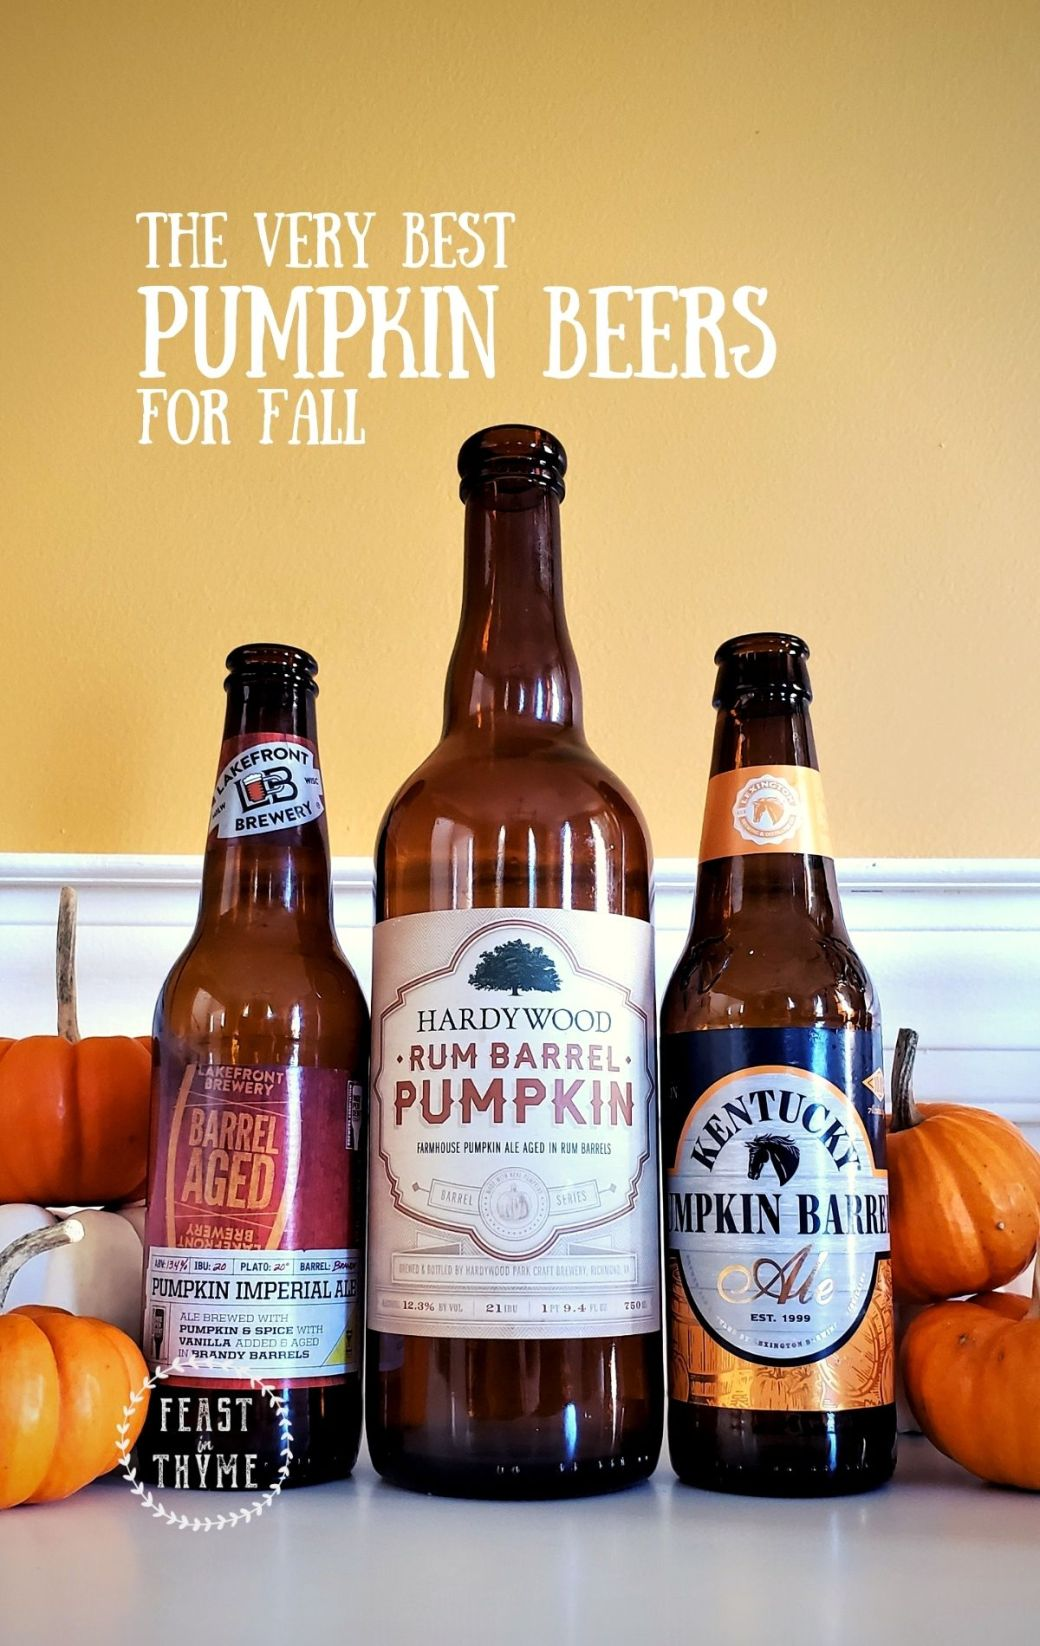 The Best Fall Pumpkin Beers (And a Few Ciders Too)